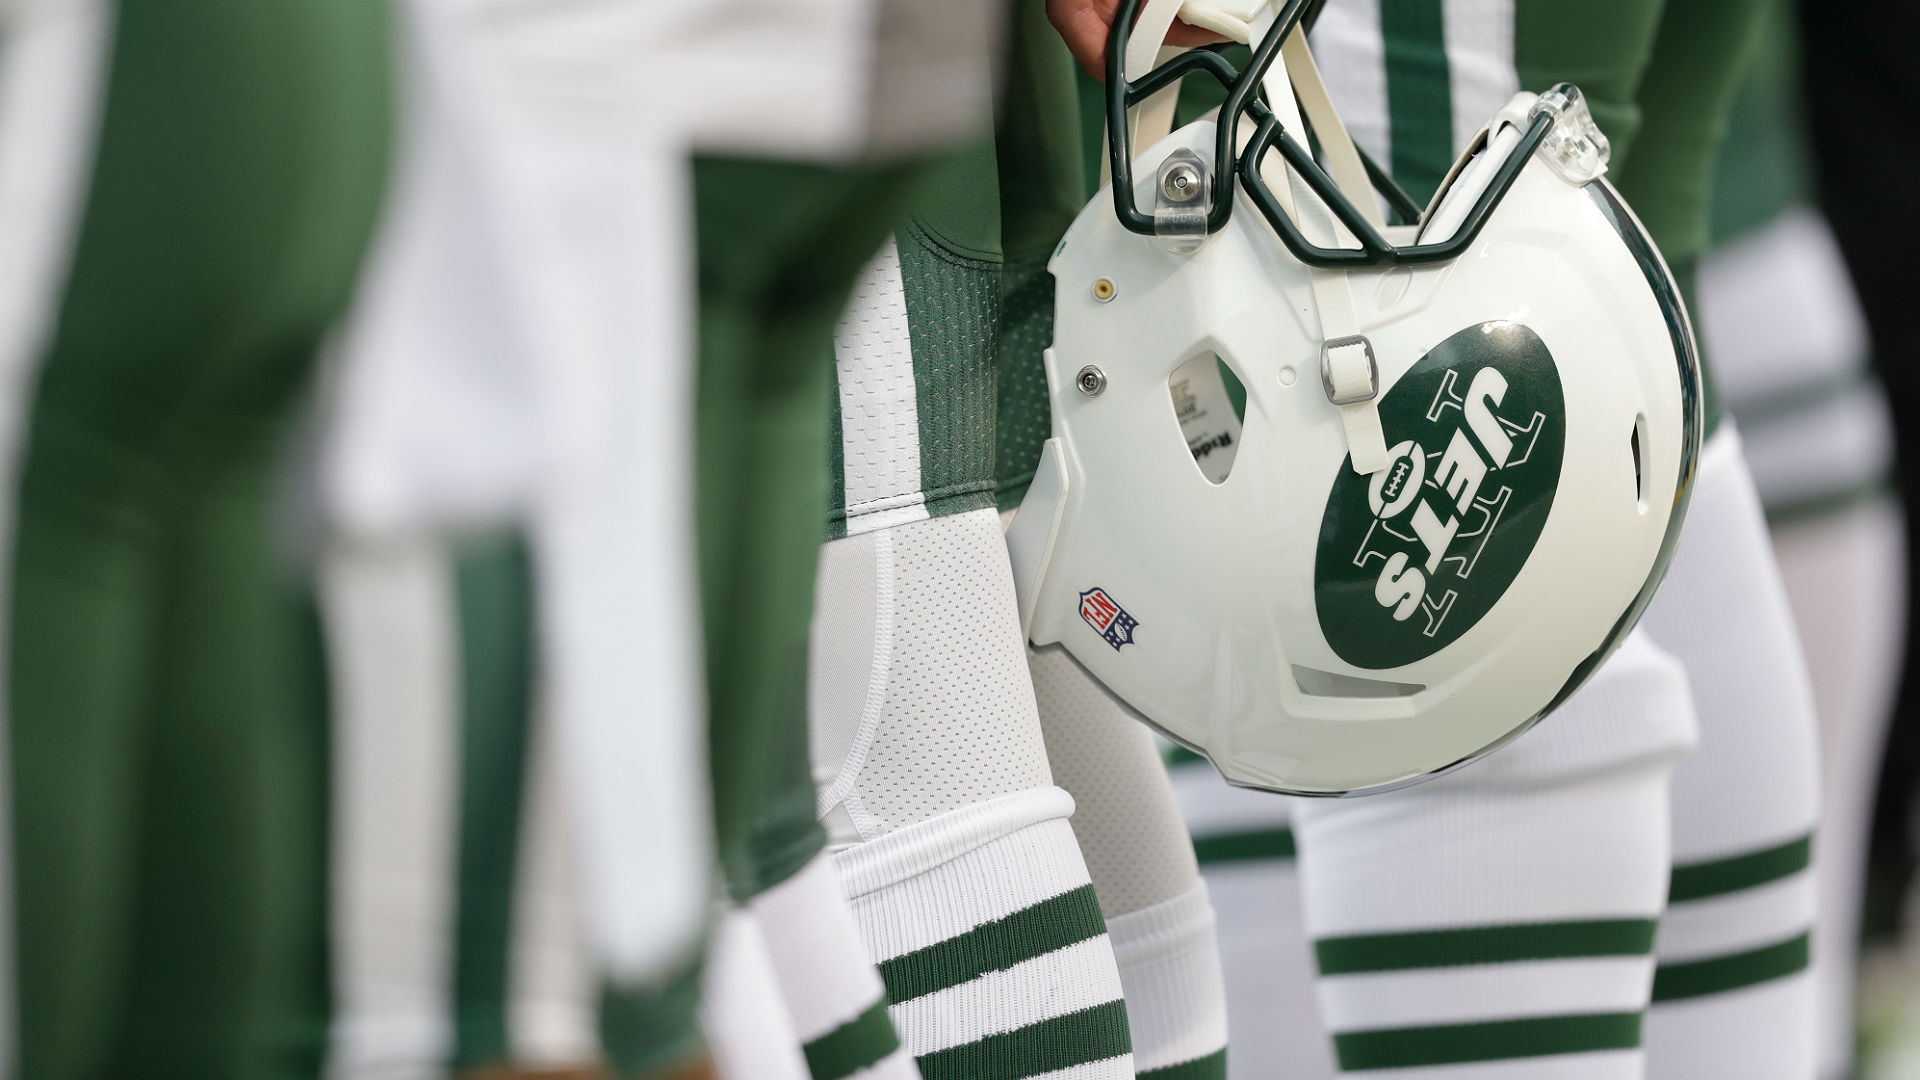 Takeaways from the New York Jets loss to the Dolphins